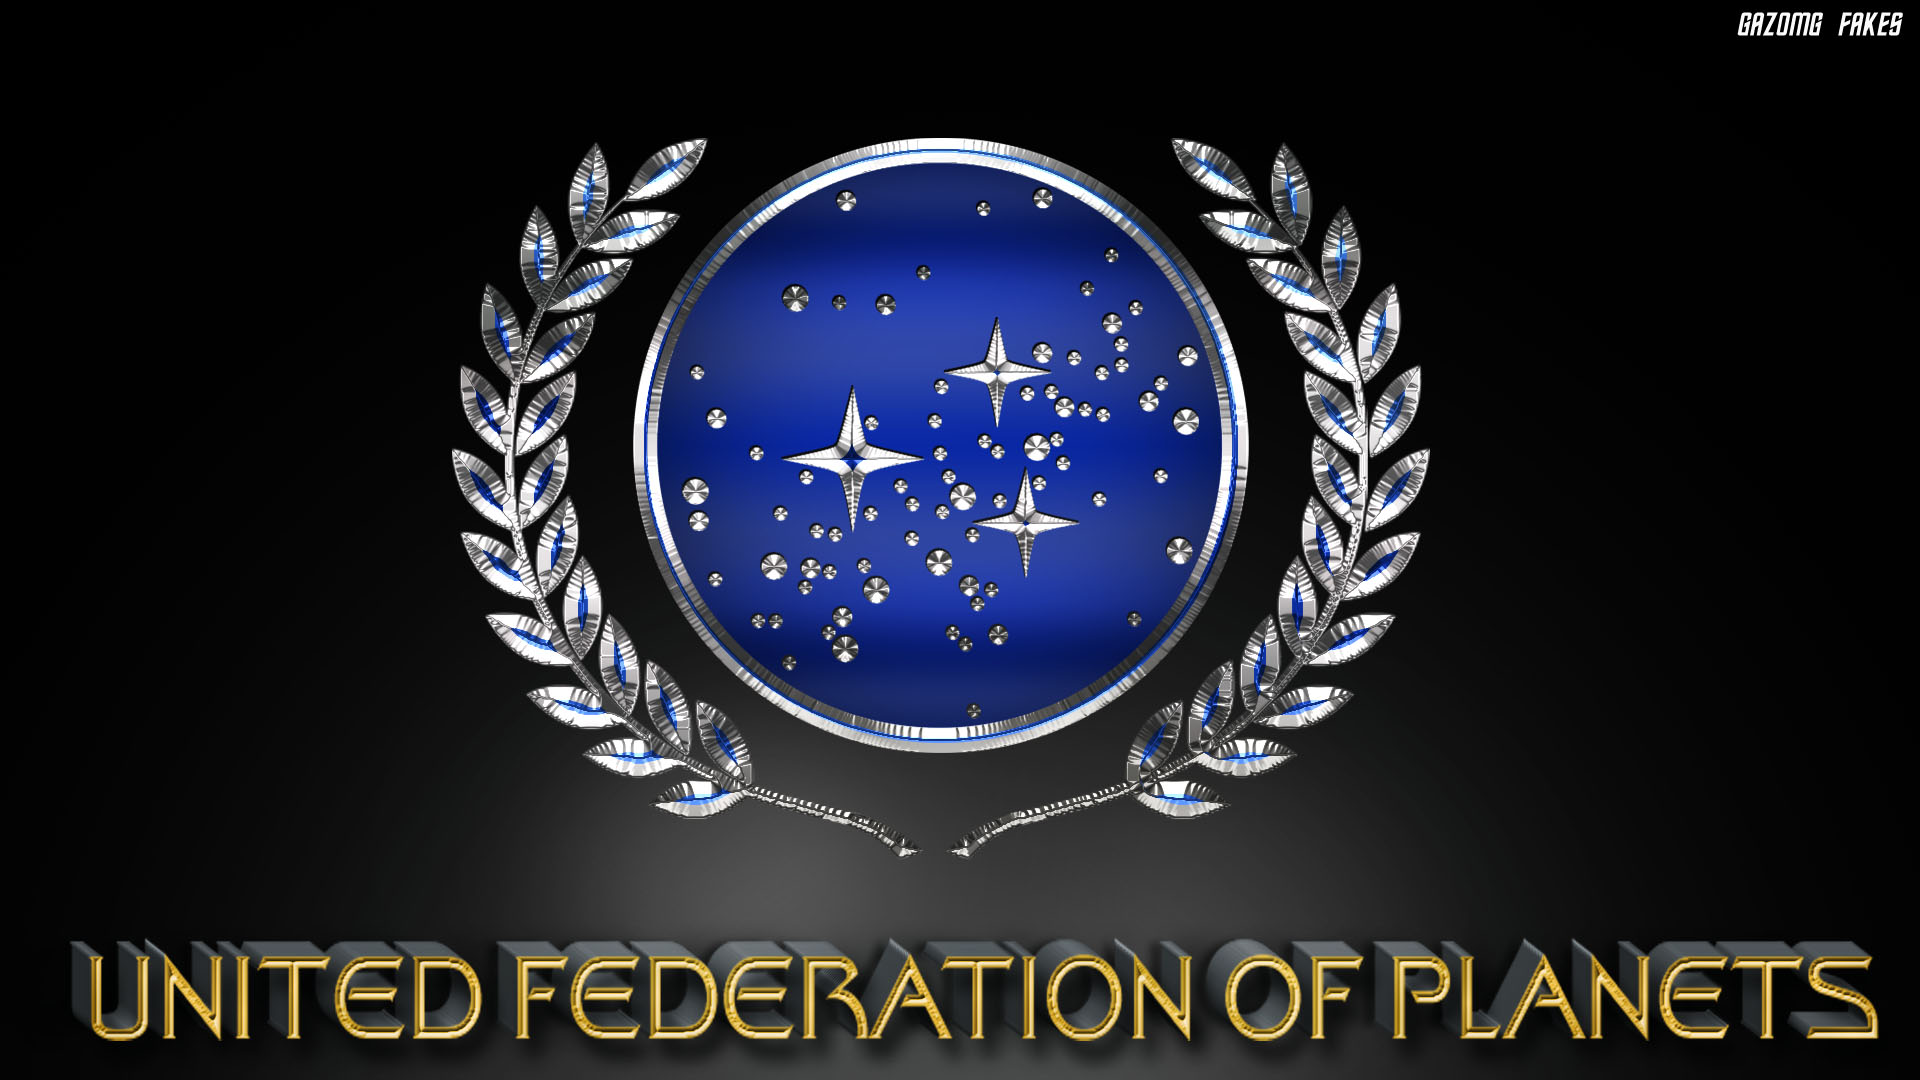 United Federation Planets 4k Ultra Hd Images